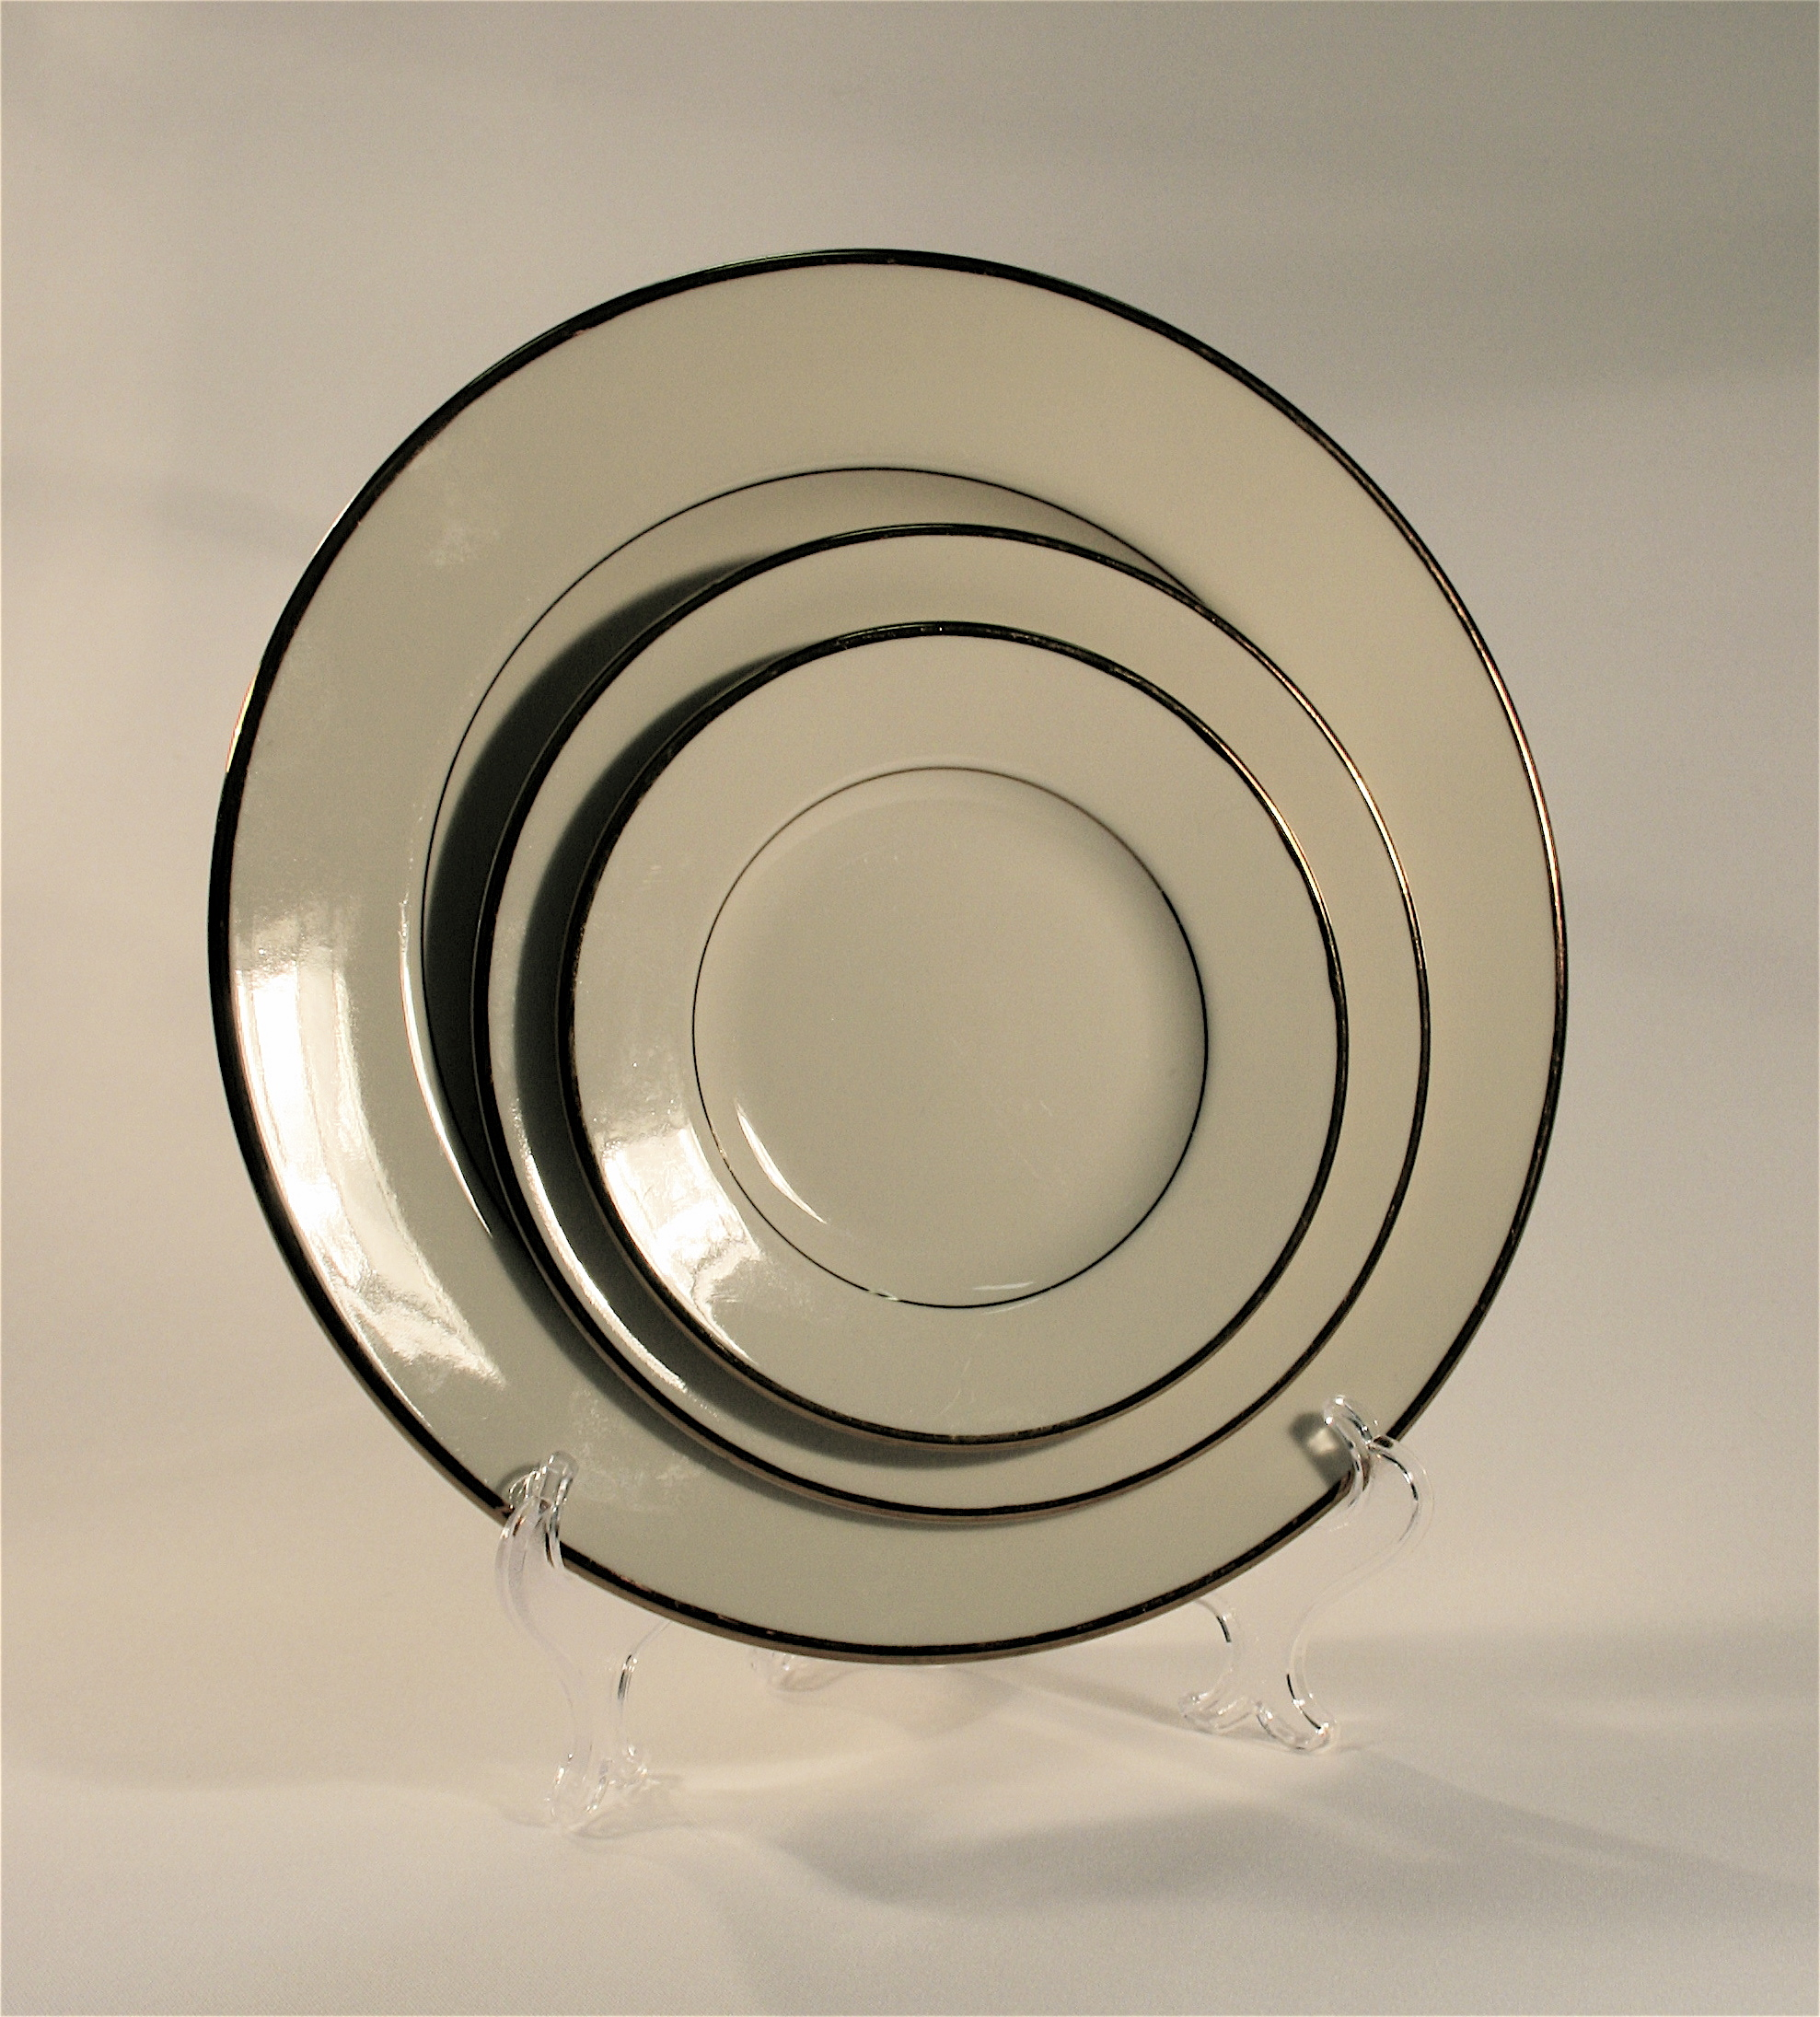 10u2033 Dinner Plate (Ivory and Gold) & 10